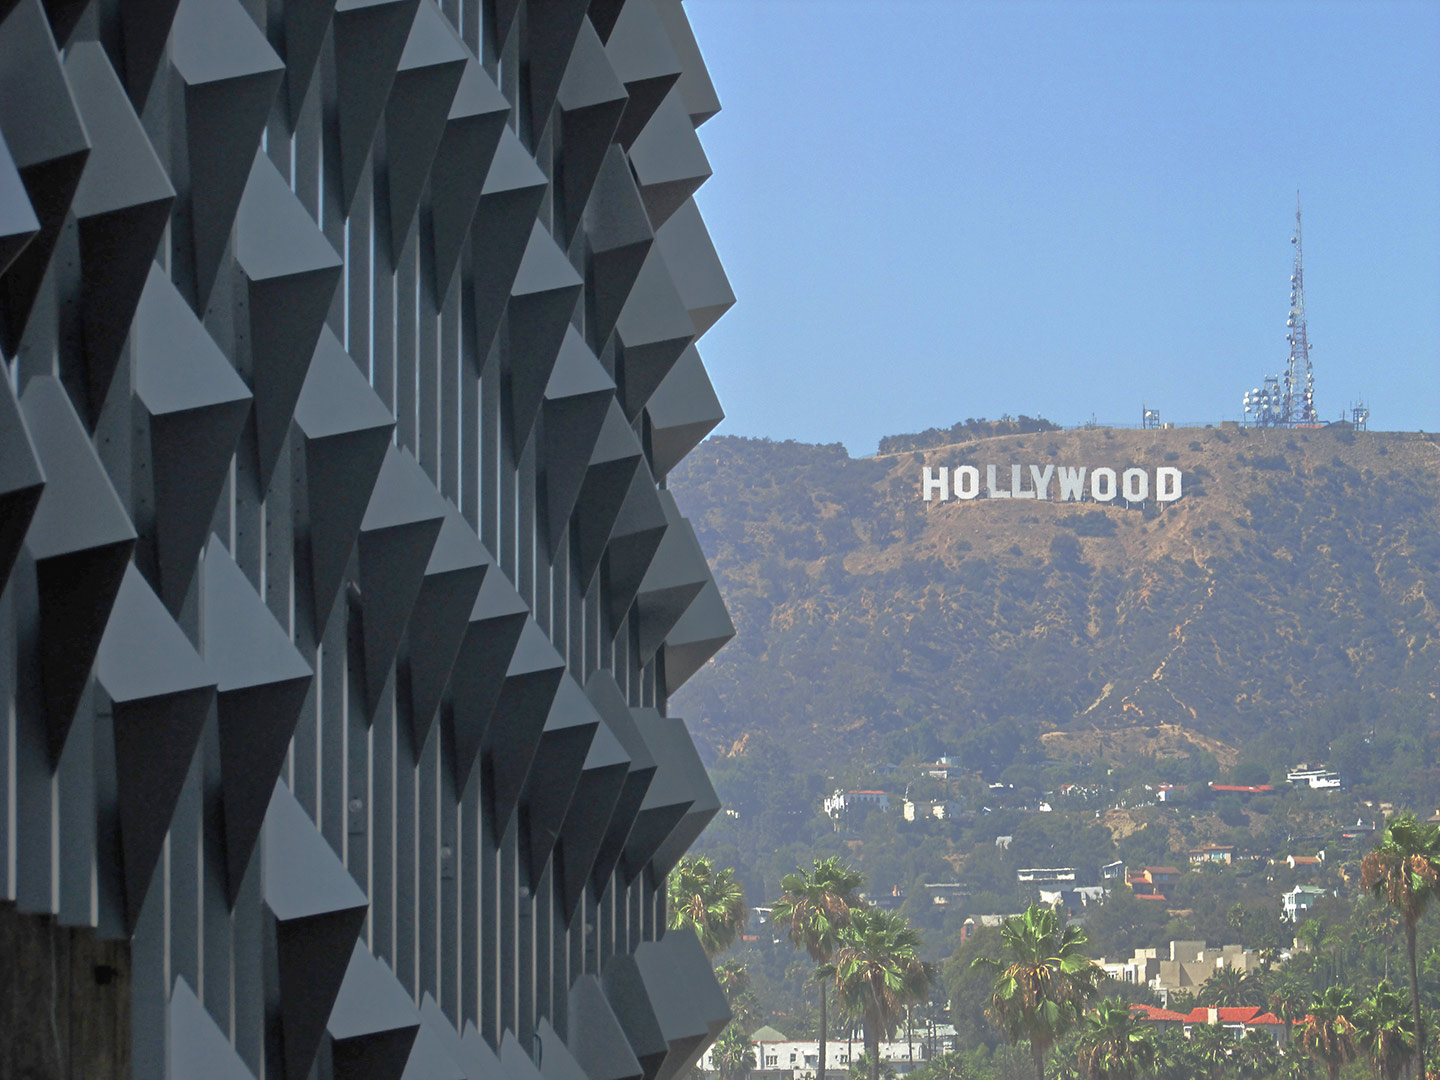 Detail of the Emerson LA facade against Hollywood Hills in California.